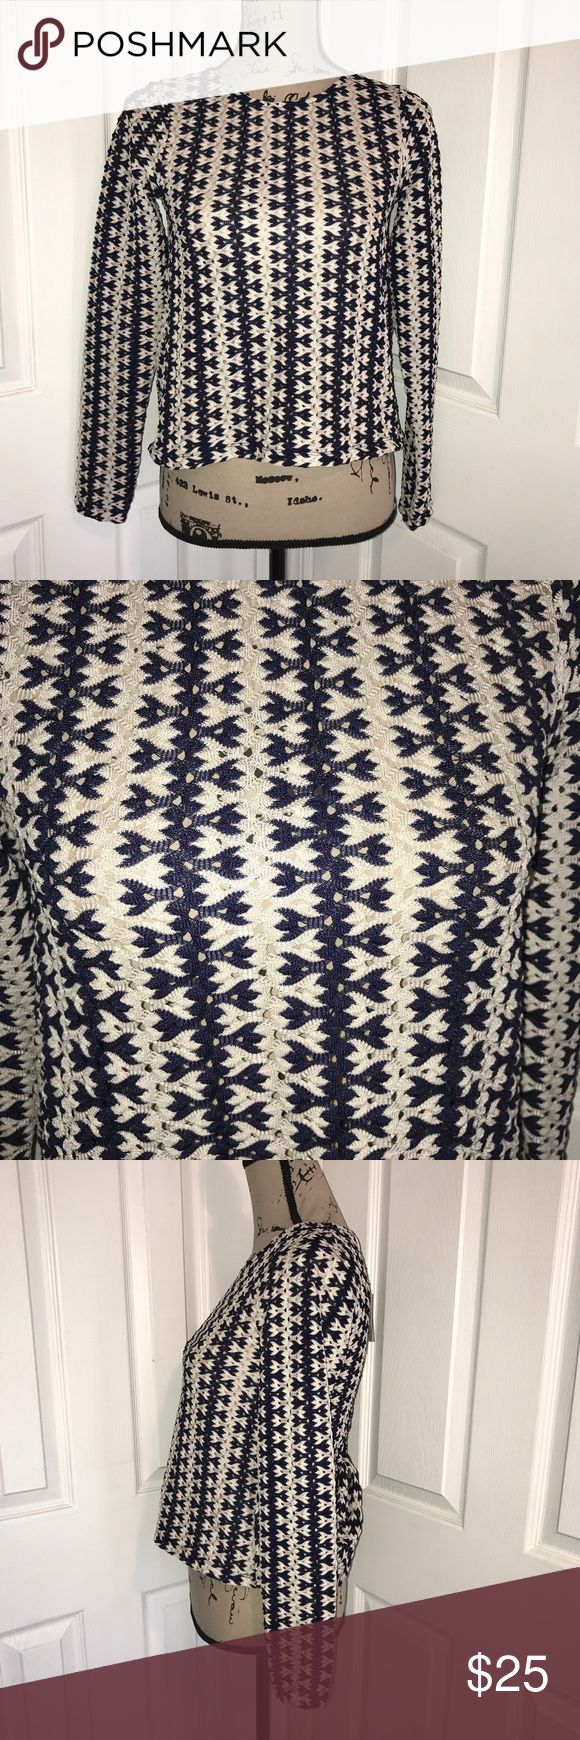 """Zara NWT open back long sleeve top Navy blue and cream long sleeve Blouse.  Crocheted like pattern.  Open back.  100% polyester.  Armpit to armpit 15"""", length 19"""", flat.  Made by Zara.  Size small. Zara Tops Blouses"""